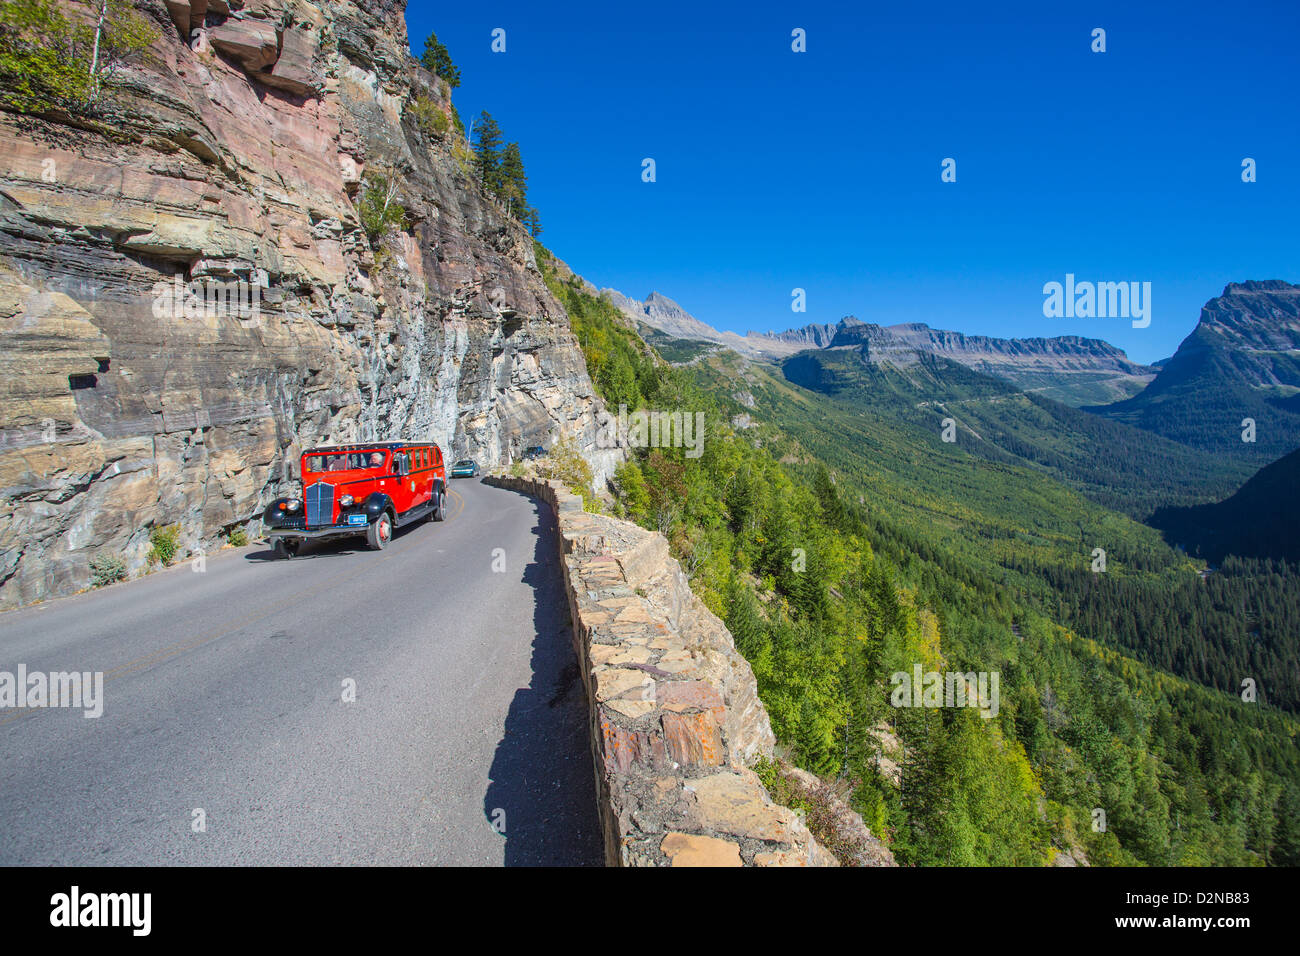 Red Bus on the Going to the Sun Road in Glacier National Park in the Rocky Mountains of Montana - Stock Image